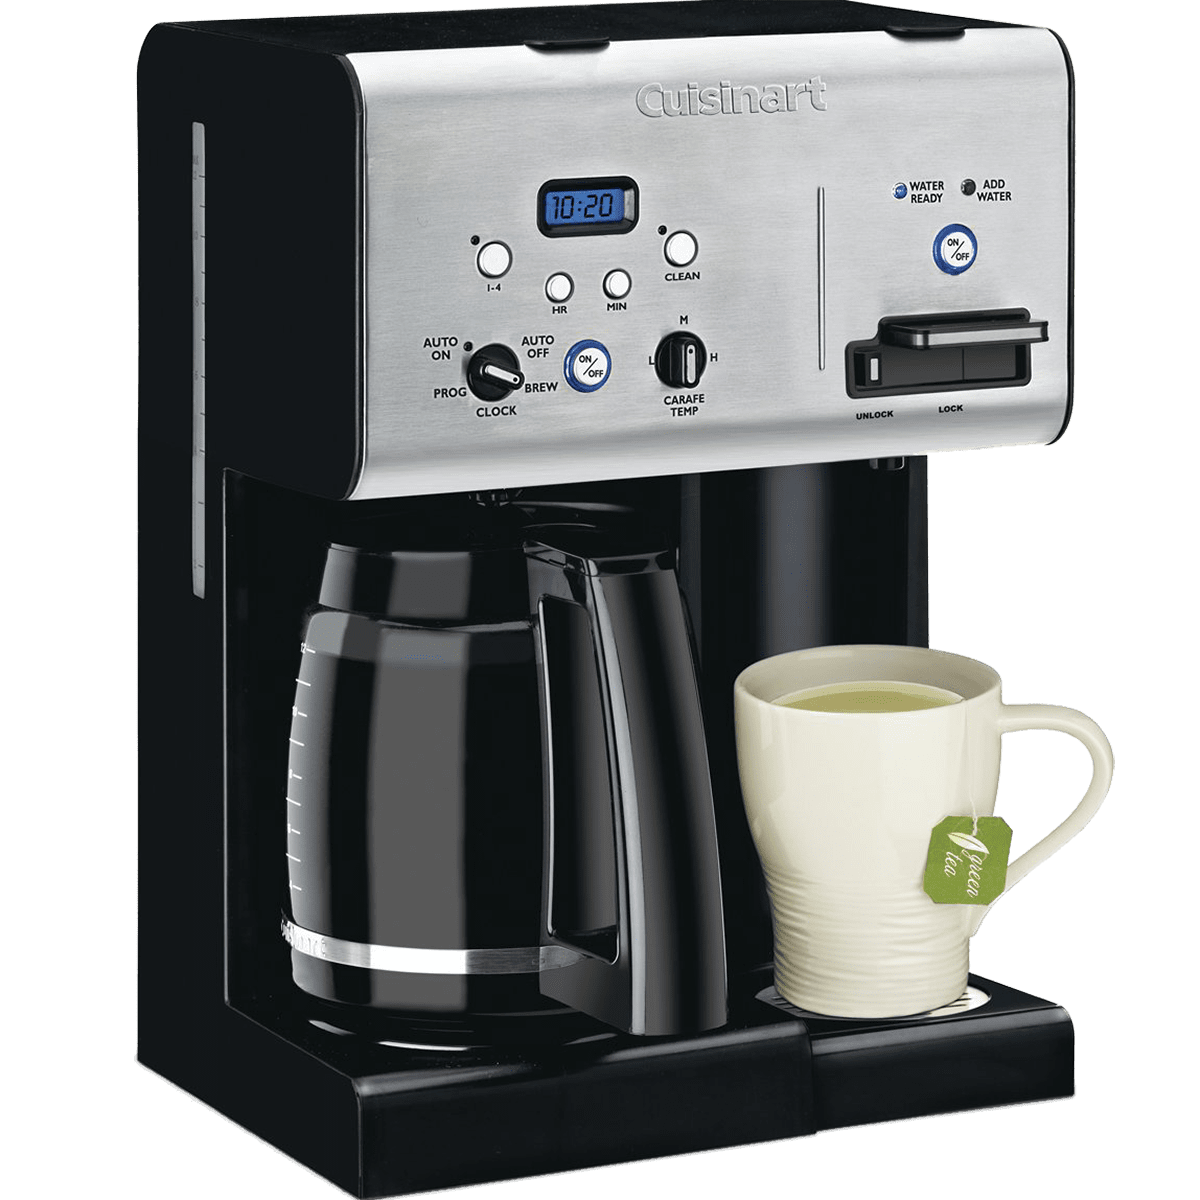 Cuisinart Programmable Coffee Maker w/ Hot Water System (CHW12) Quench Essentials